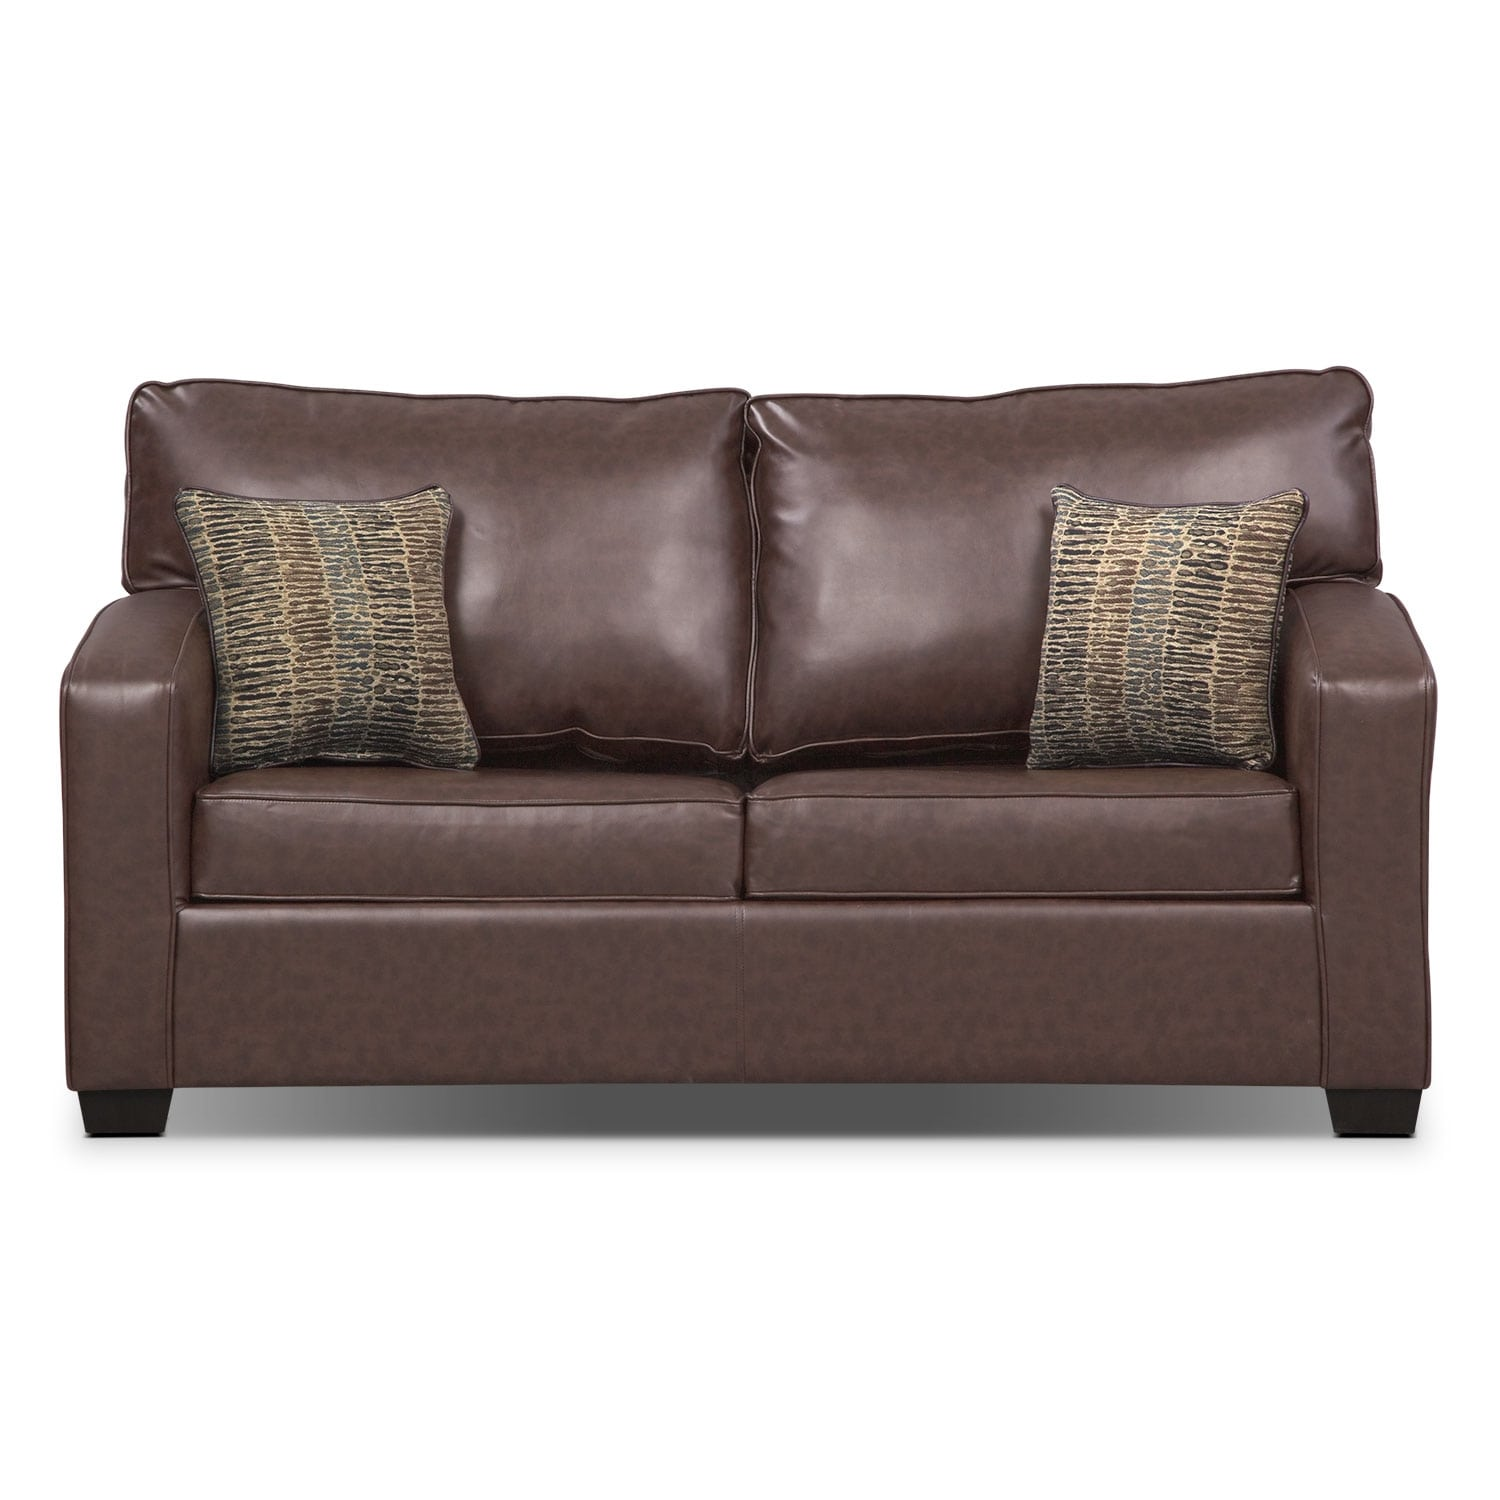 Sofa Cushion Refilling Edinburgh Refil Sofa : 372901 from forexrefiller.com size 1500 x 1500 jpeg 341kB